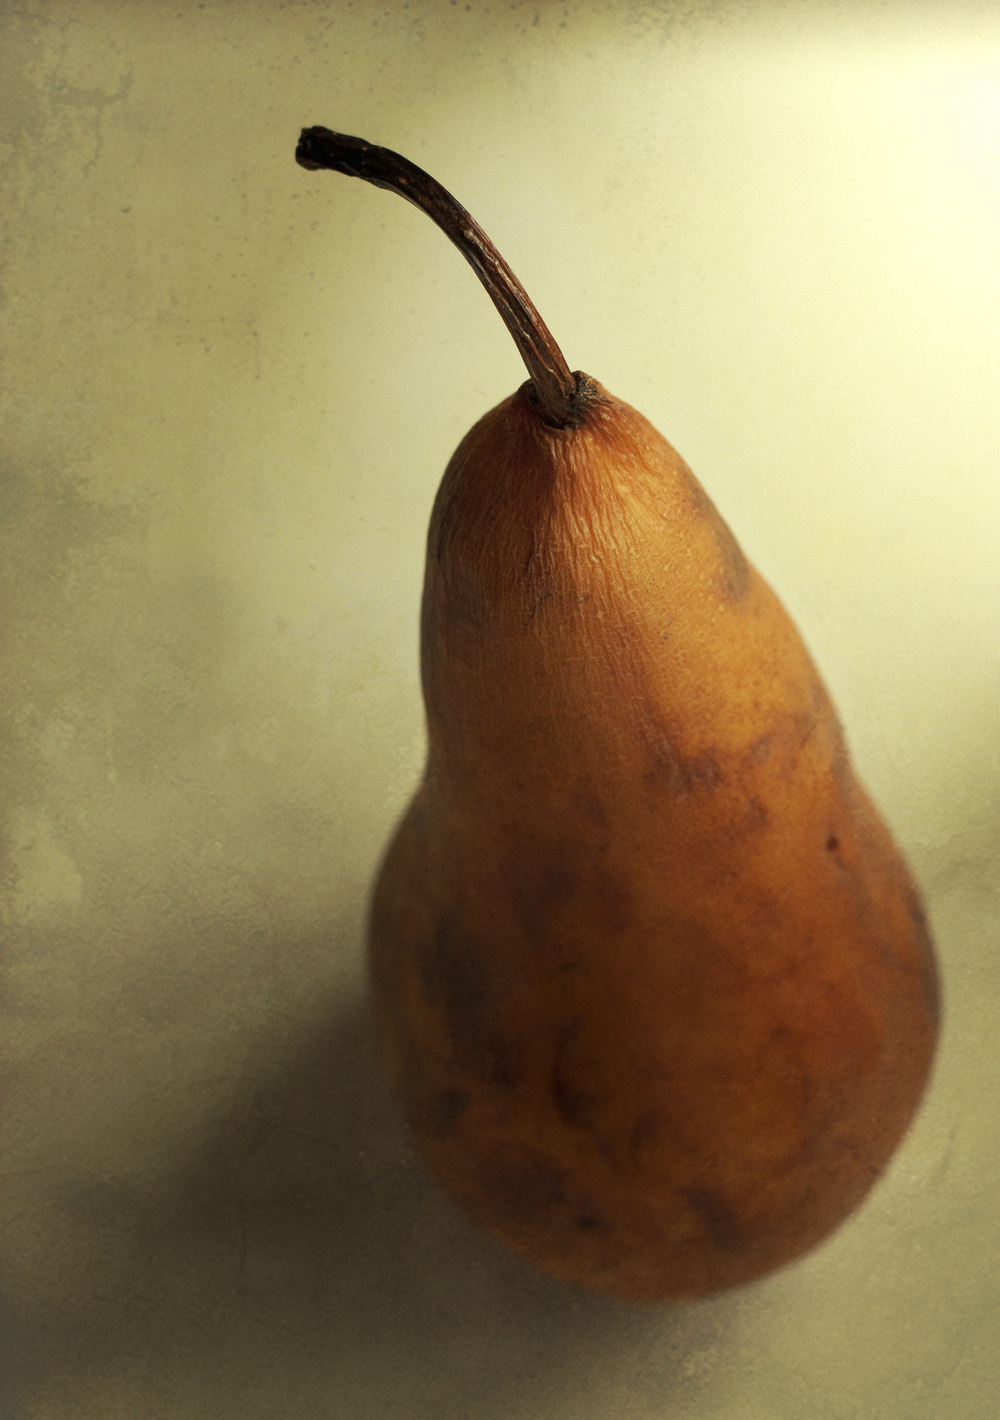 No. 4 Dying Pear